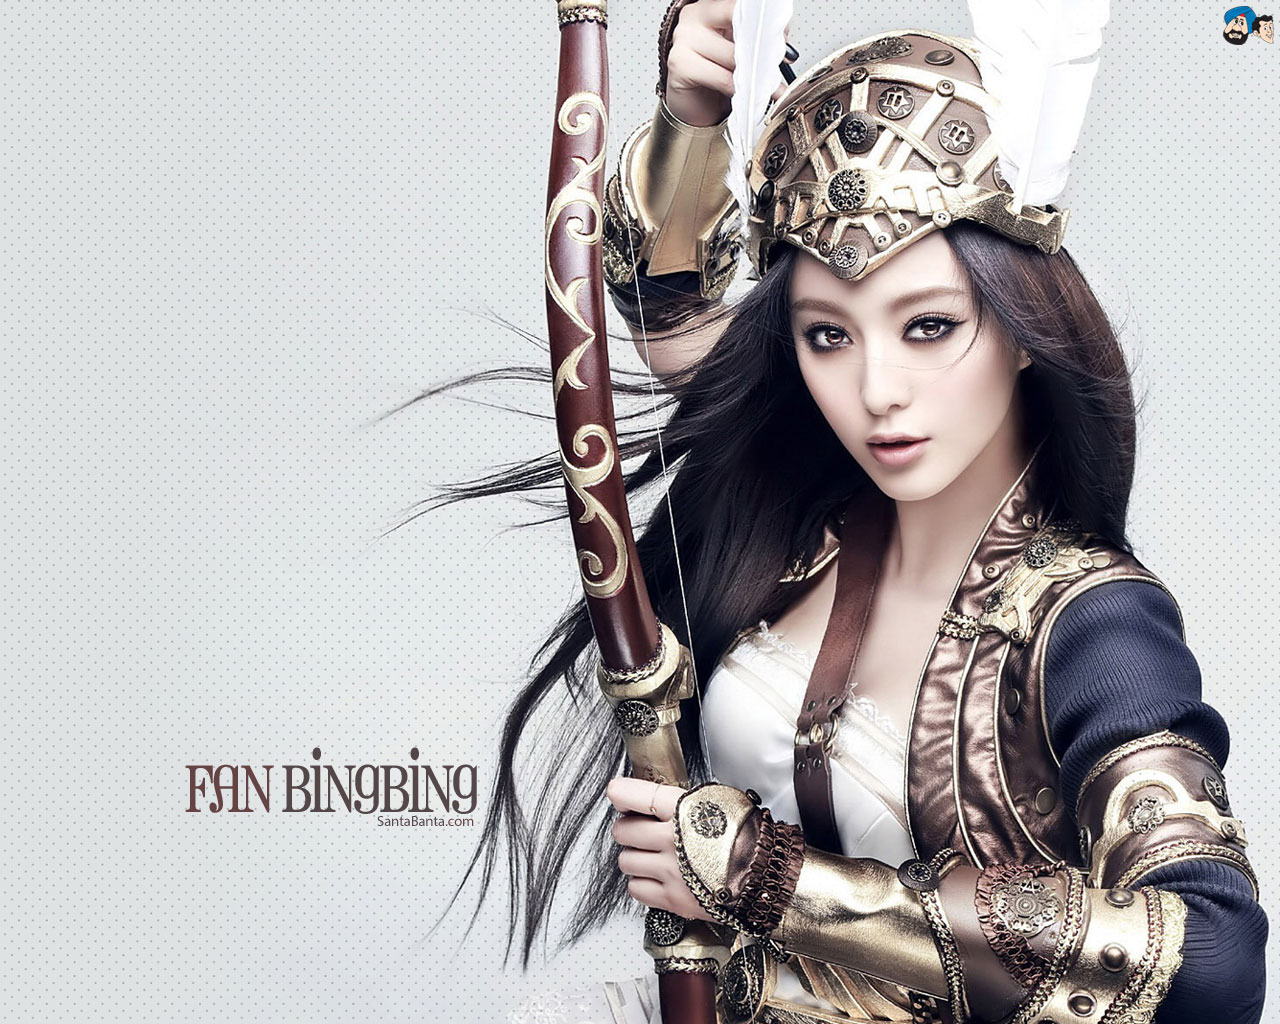 Download fan bingbing wallpapers most beautiful places - Fan wallpaper download ...